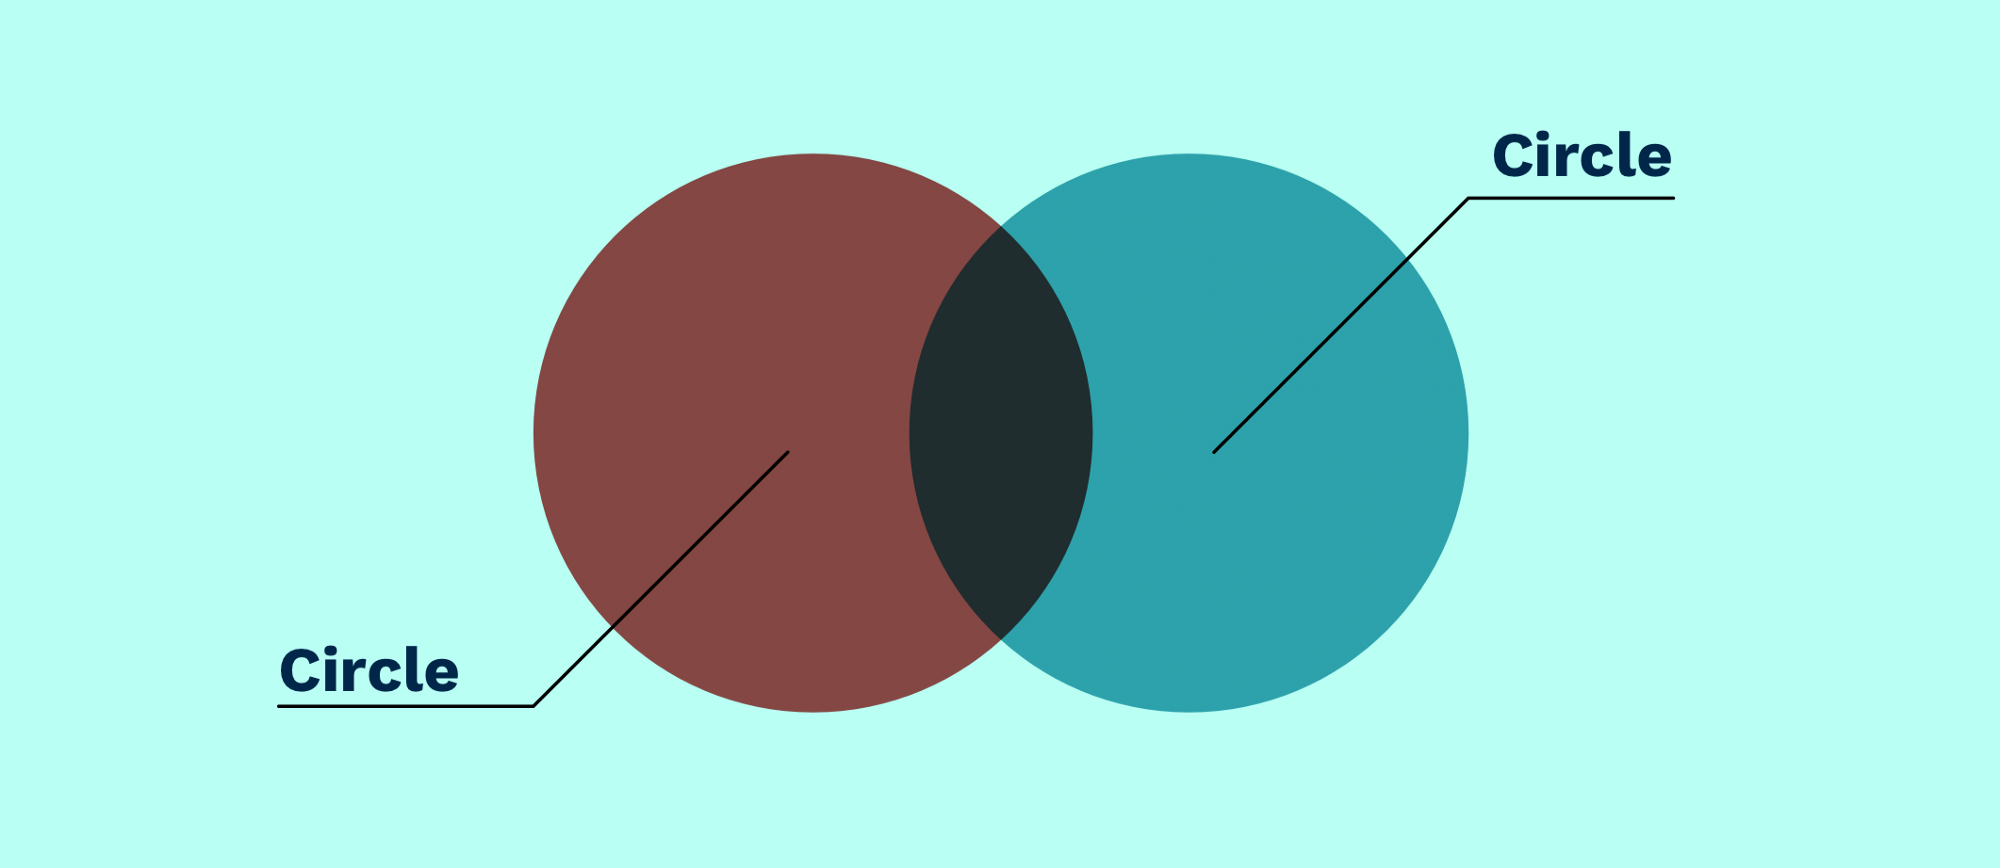 Illustration of a venn diagram